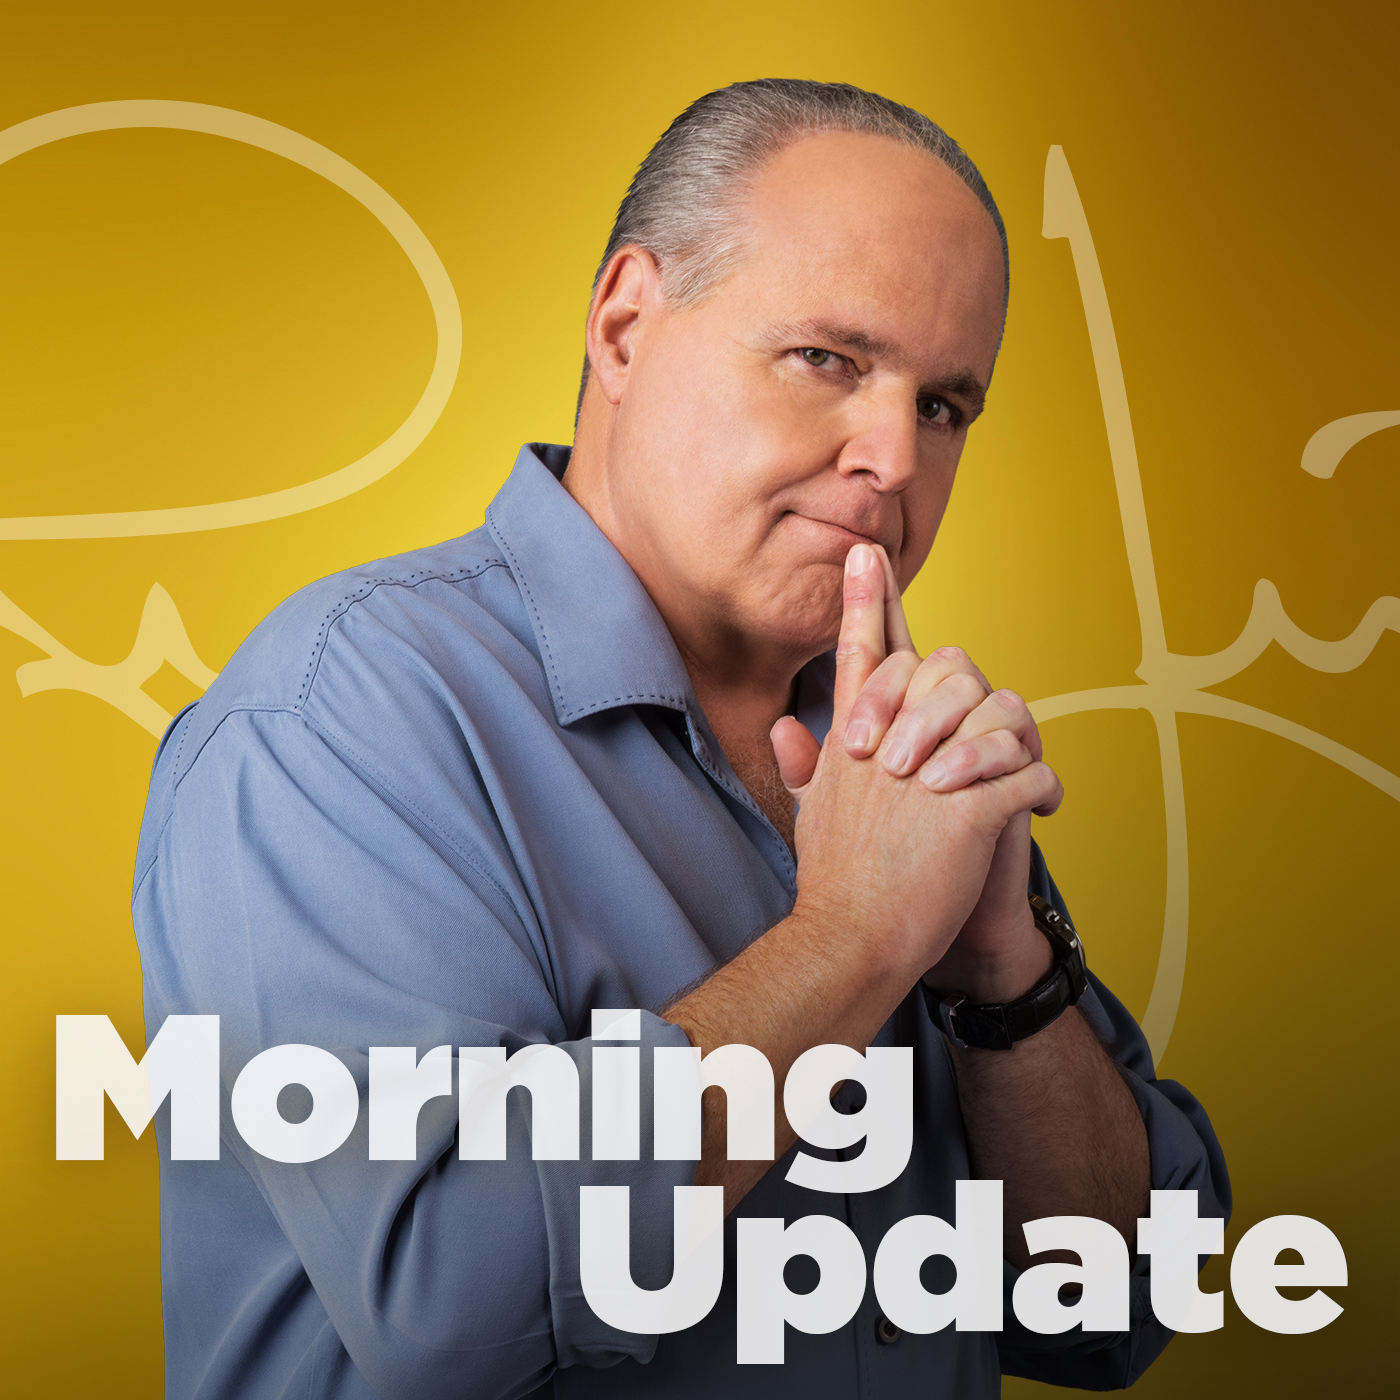 Rush Limbaugh Jan 17, 2020